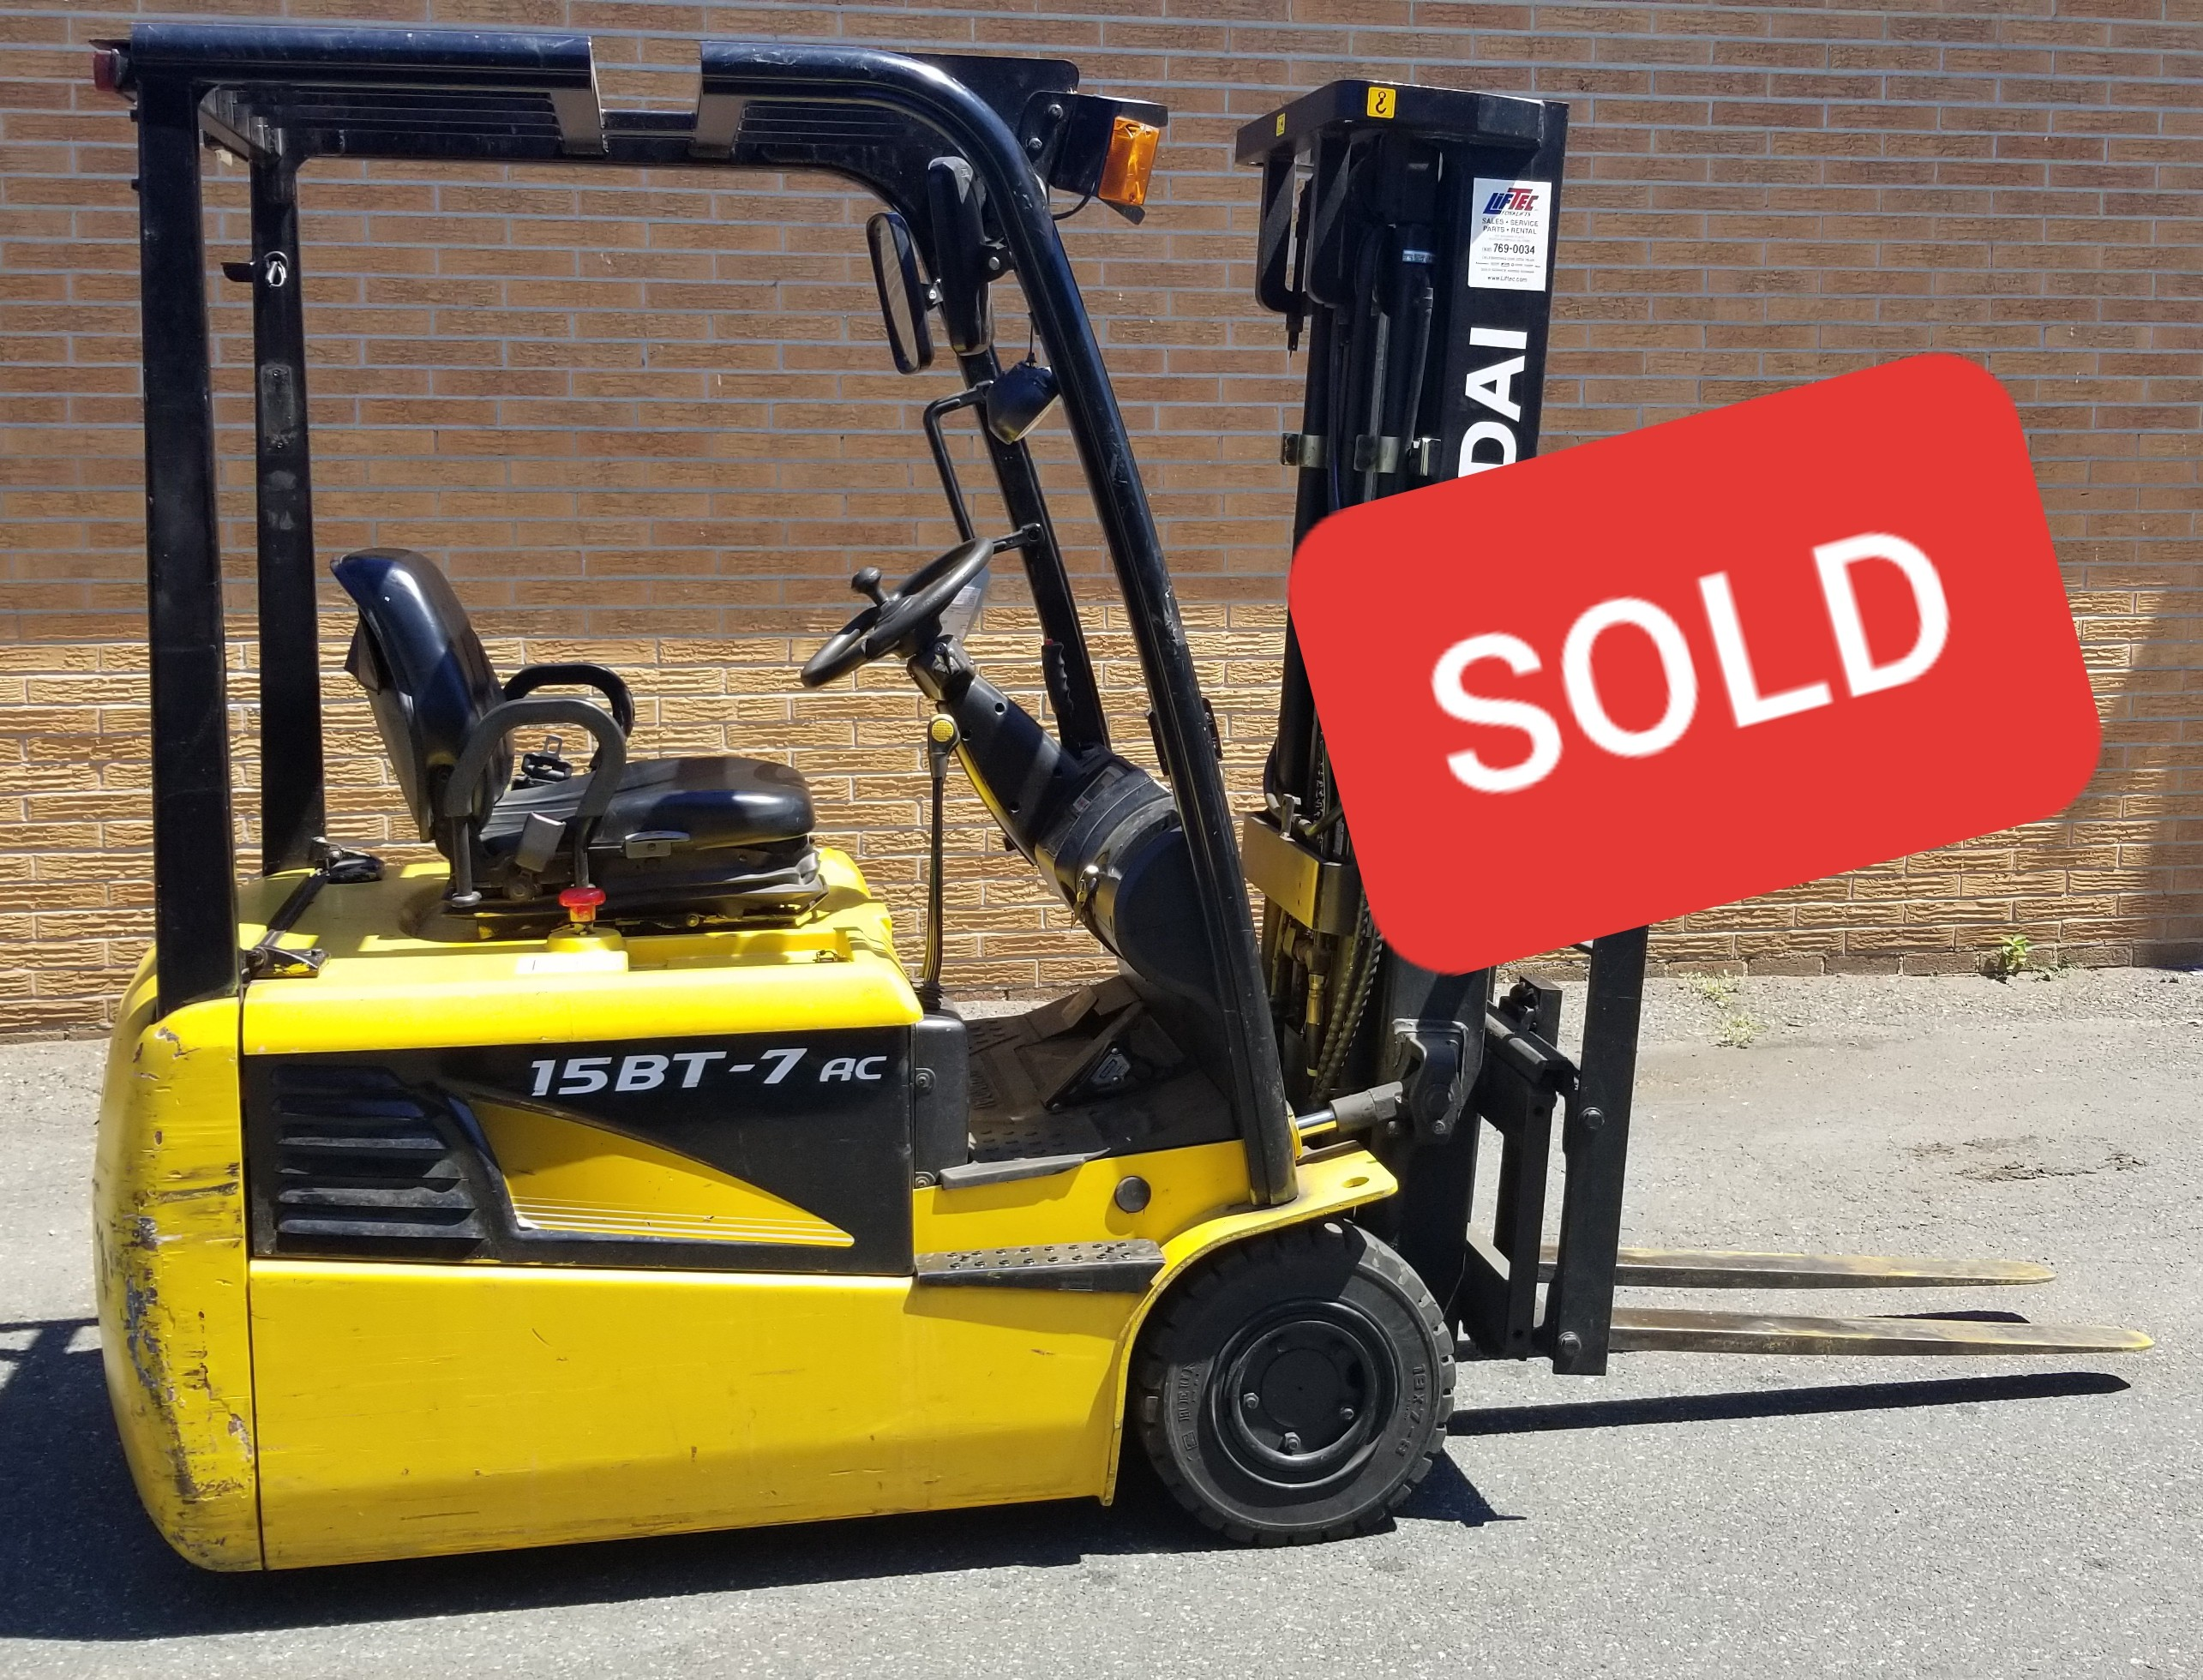 Used, 2015, Hyundai, 15BT-7, Forklifts / Lift Trucks